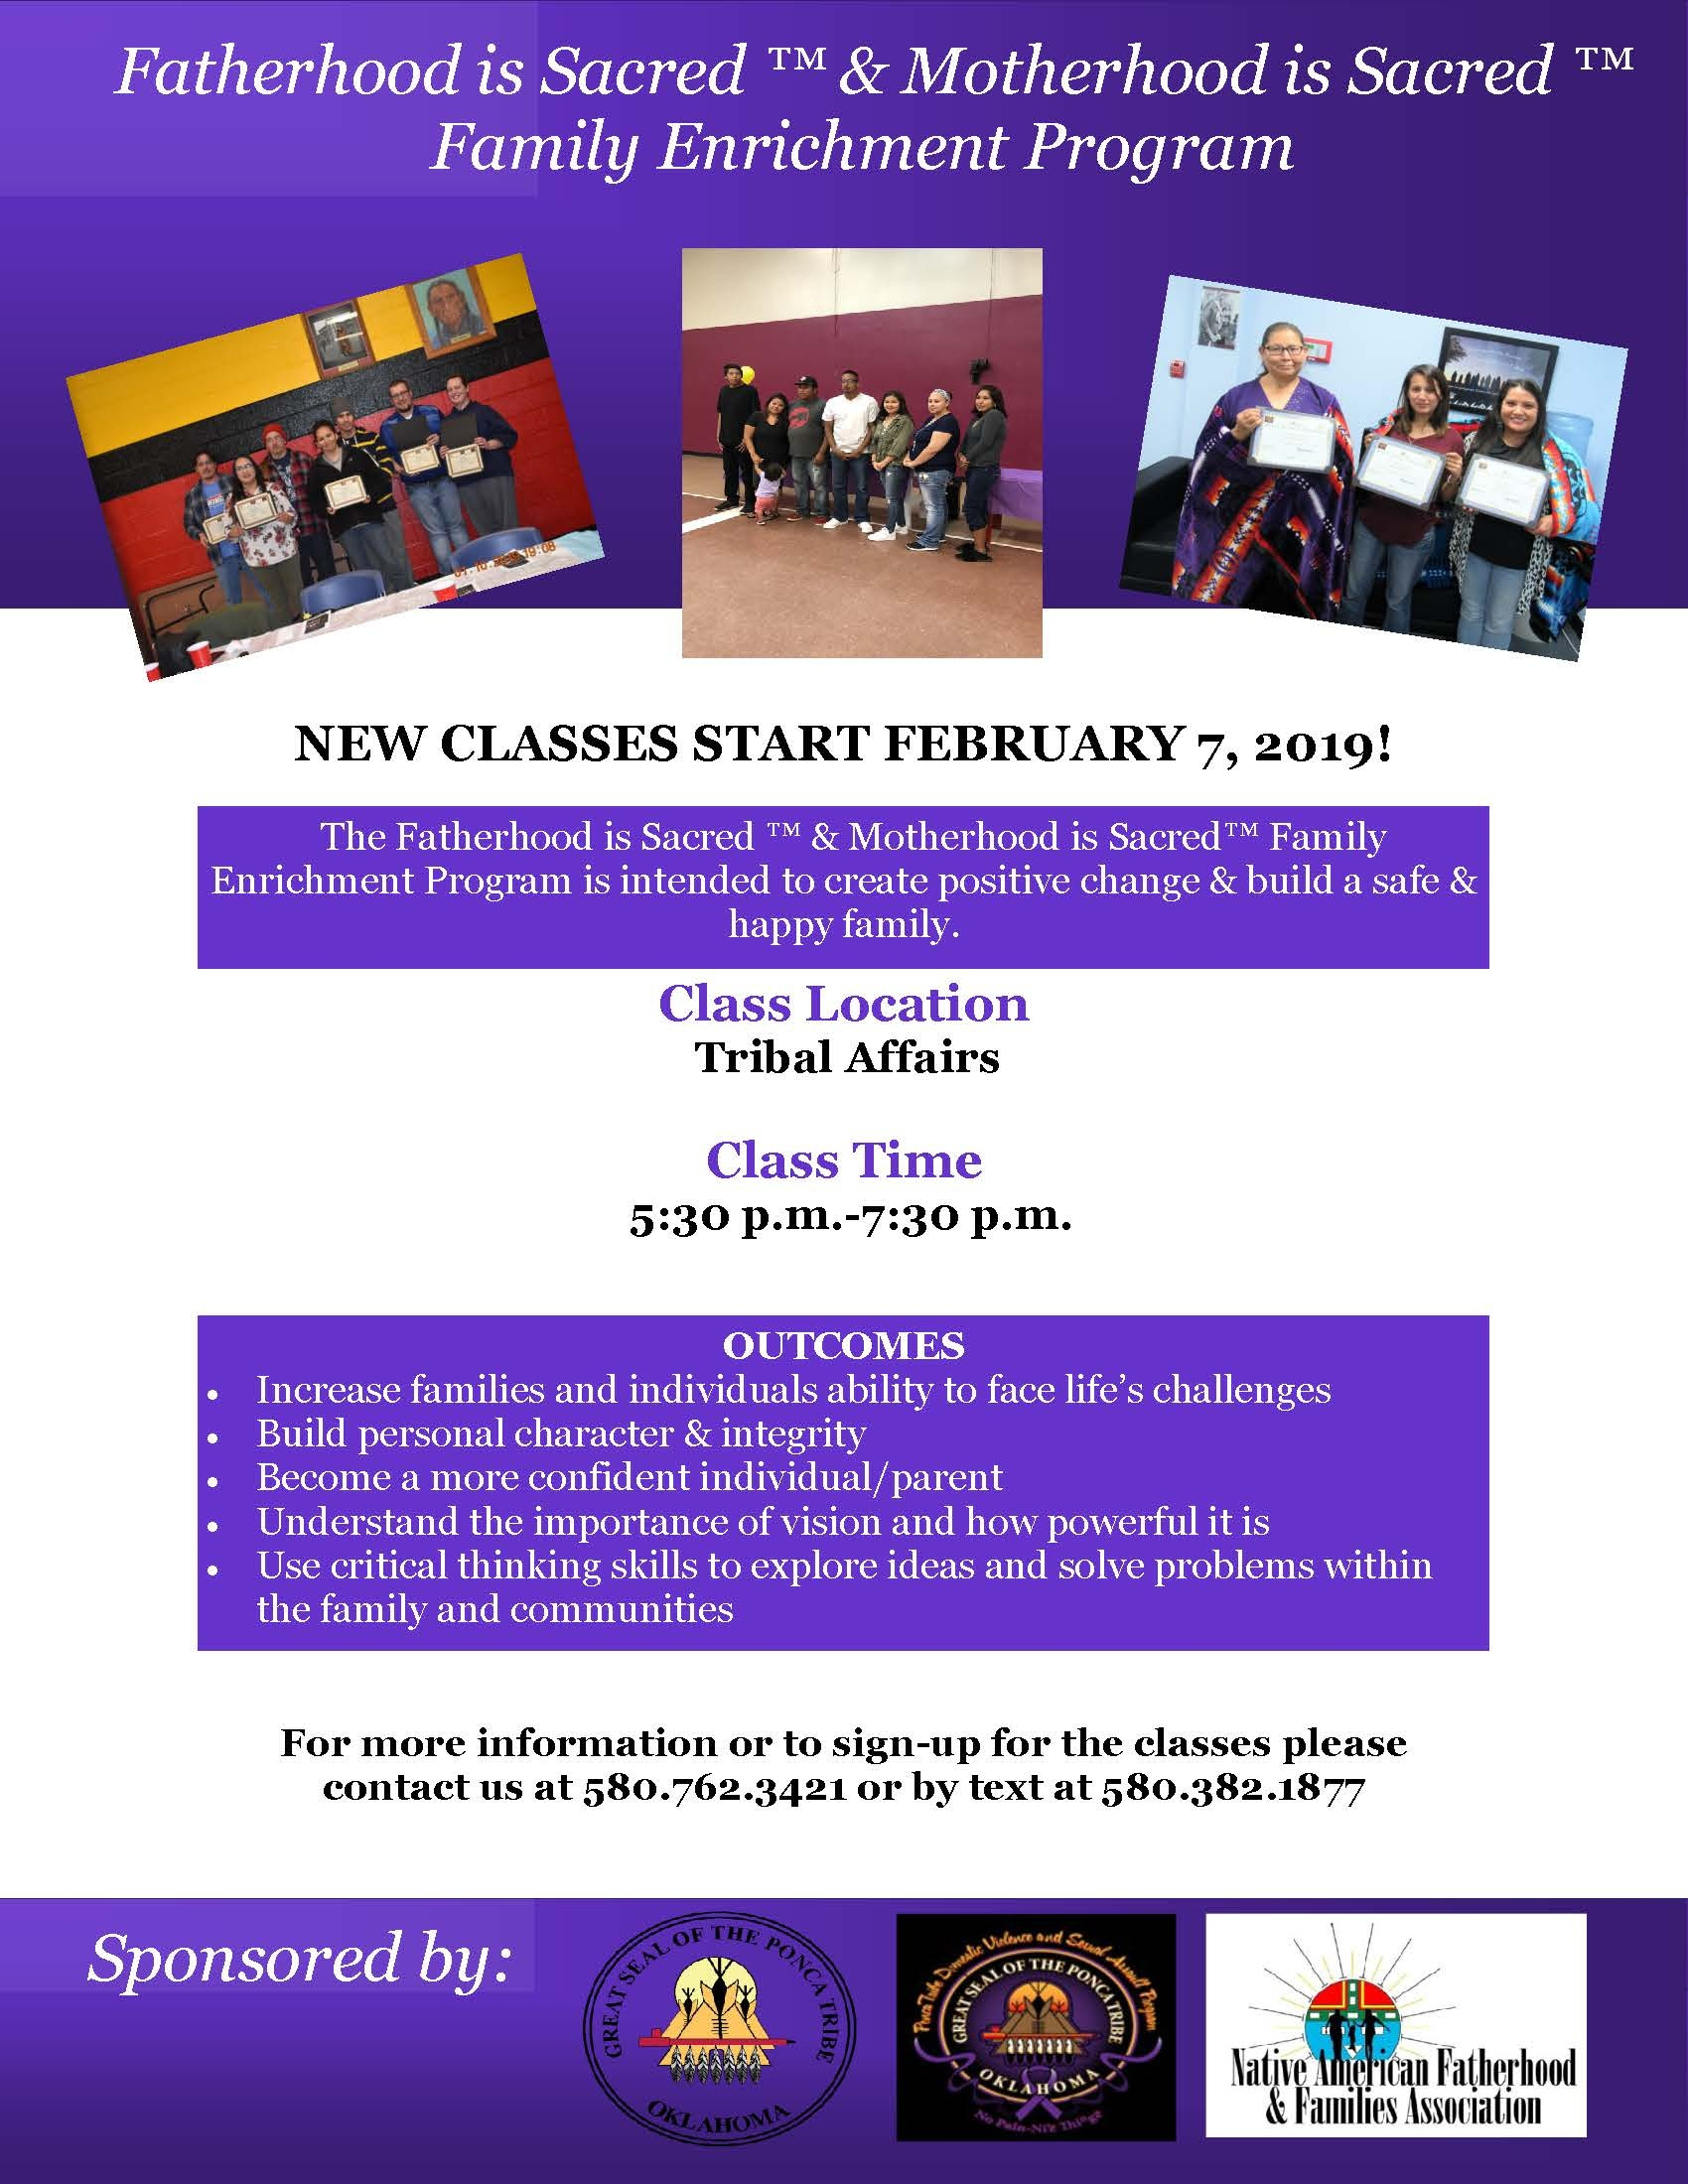 https://0201.nccdn.net/1_2/000/000/0bc/2ea/New-Flyer-for-Cohort-7-classes-1700x2200.jpg